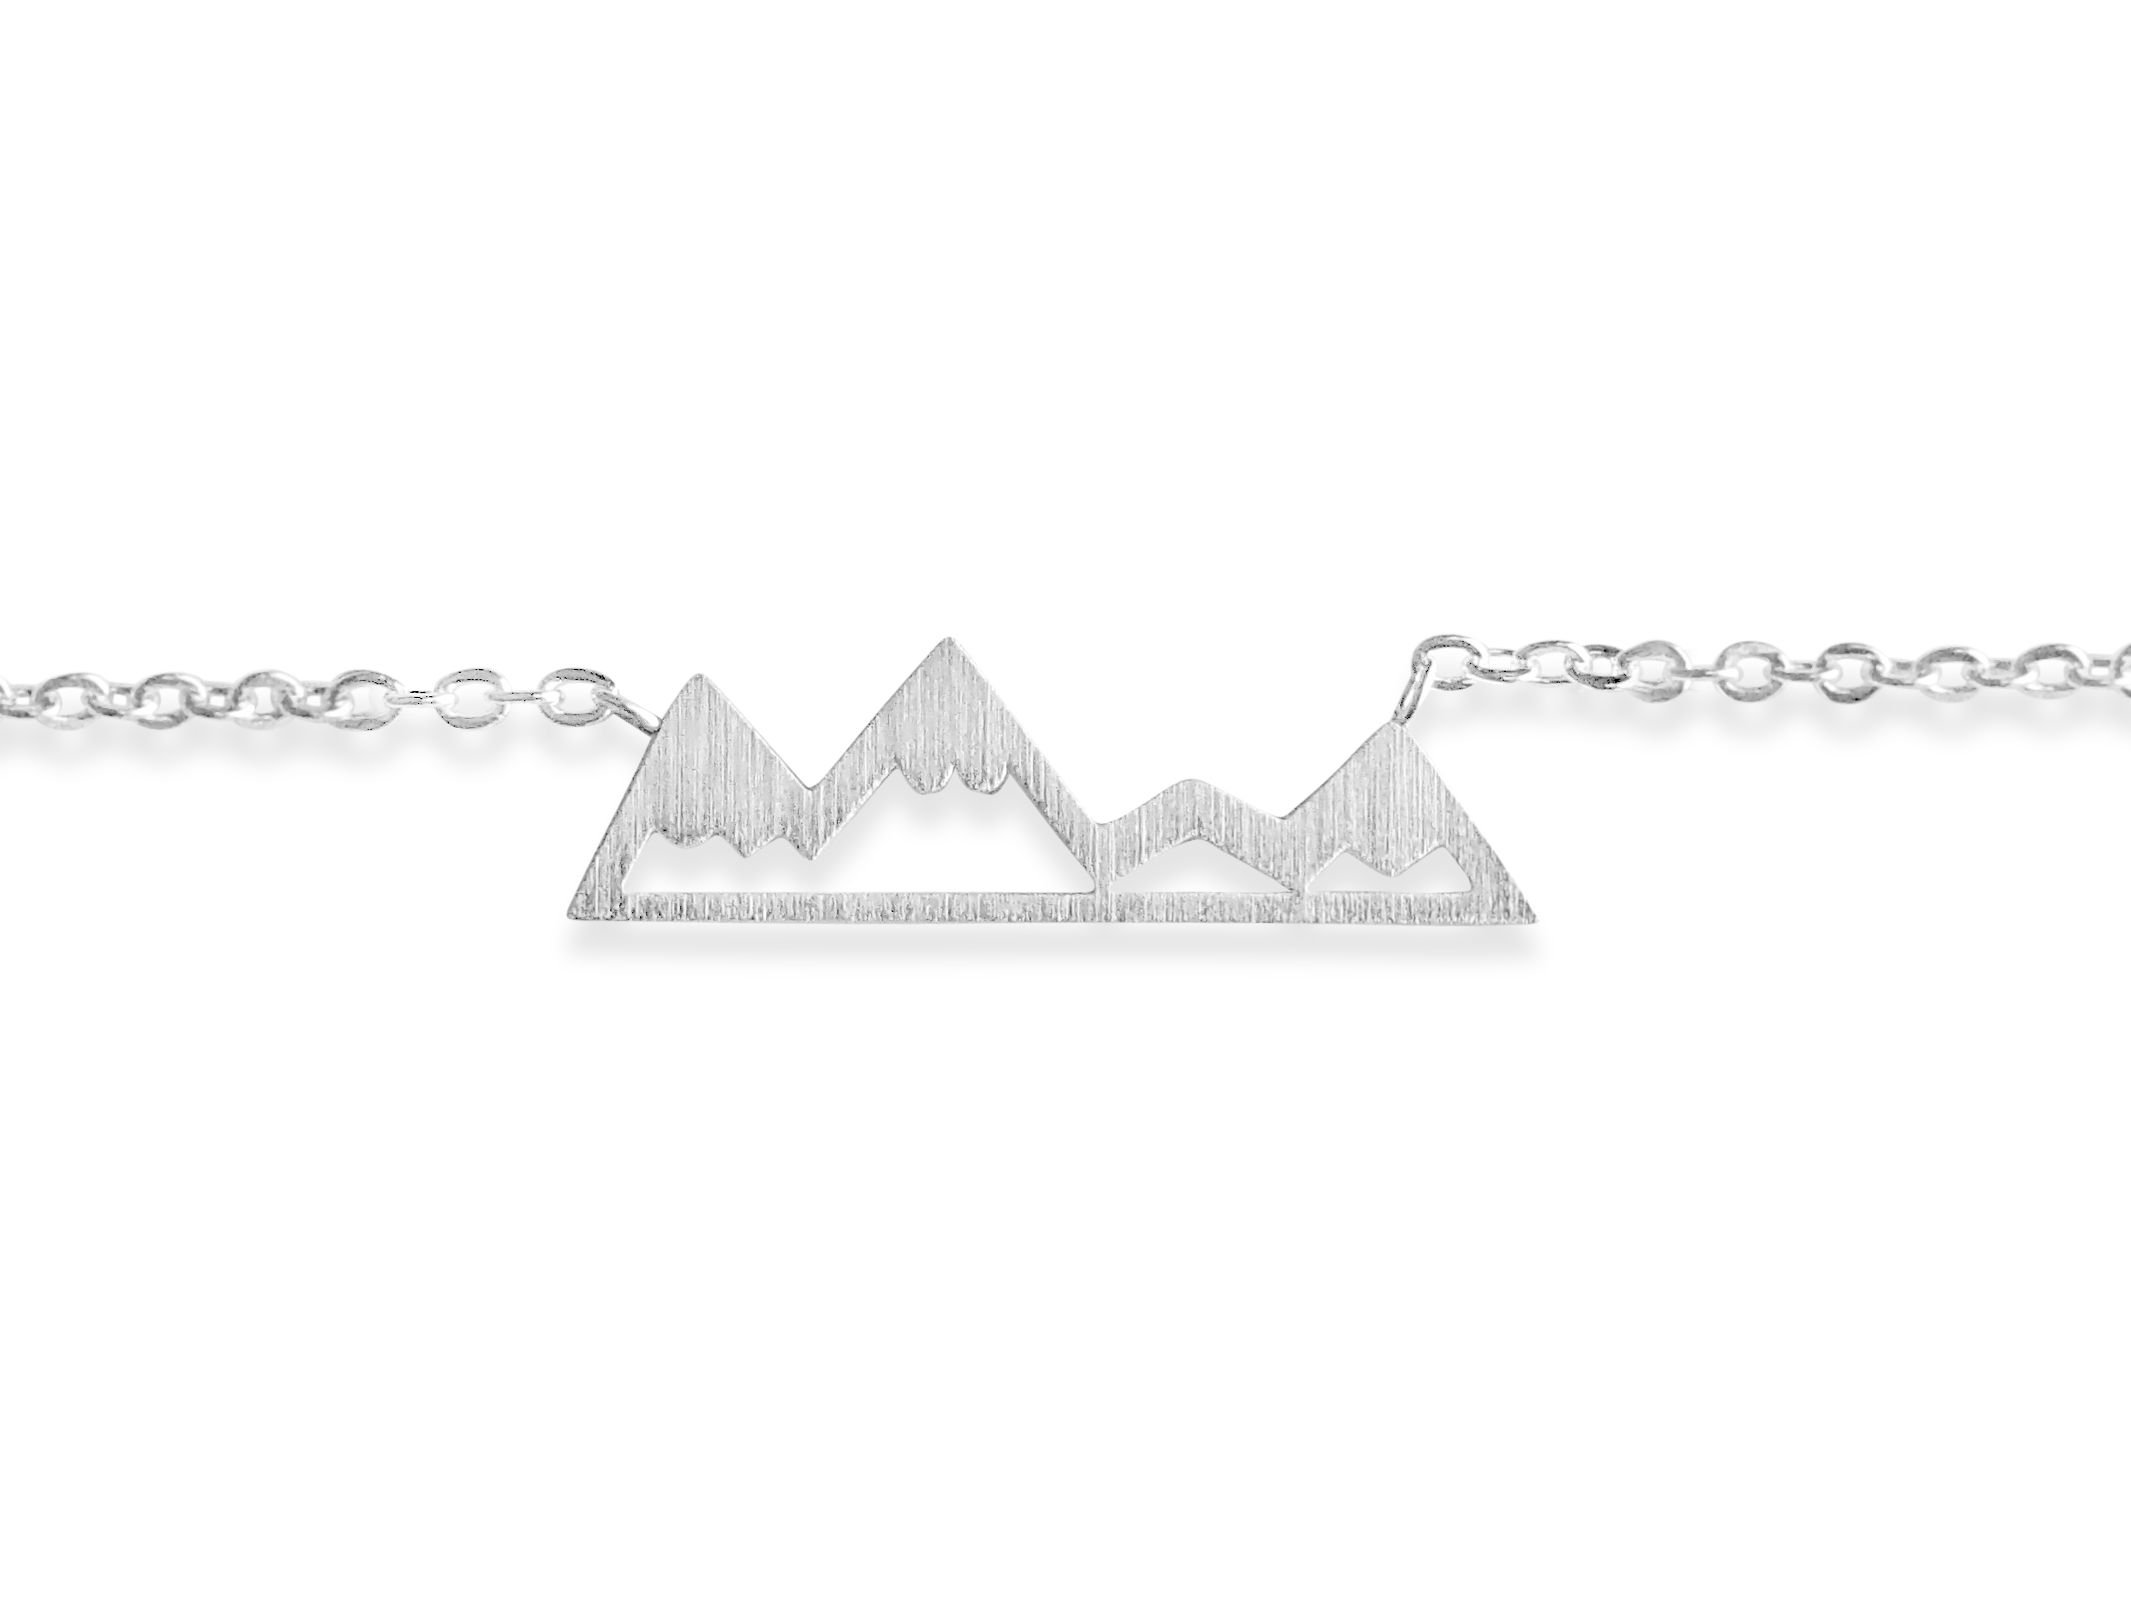 Rosa Vila Mountain Bracelet for Outdoor Lovers, Hikers, Skiers, Snowboarders, Hiking Enthusiasts, Snow Mountain Lovers (Silver Tone)